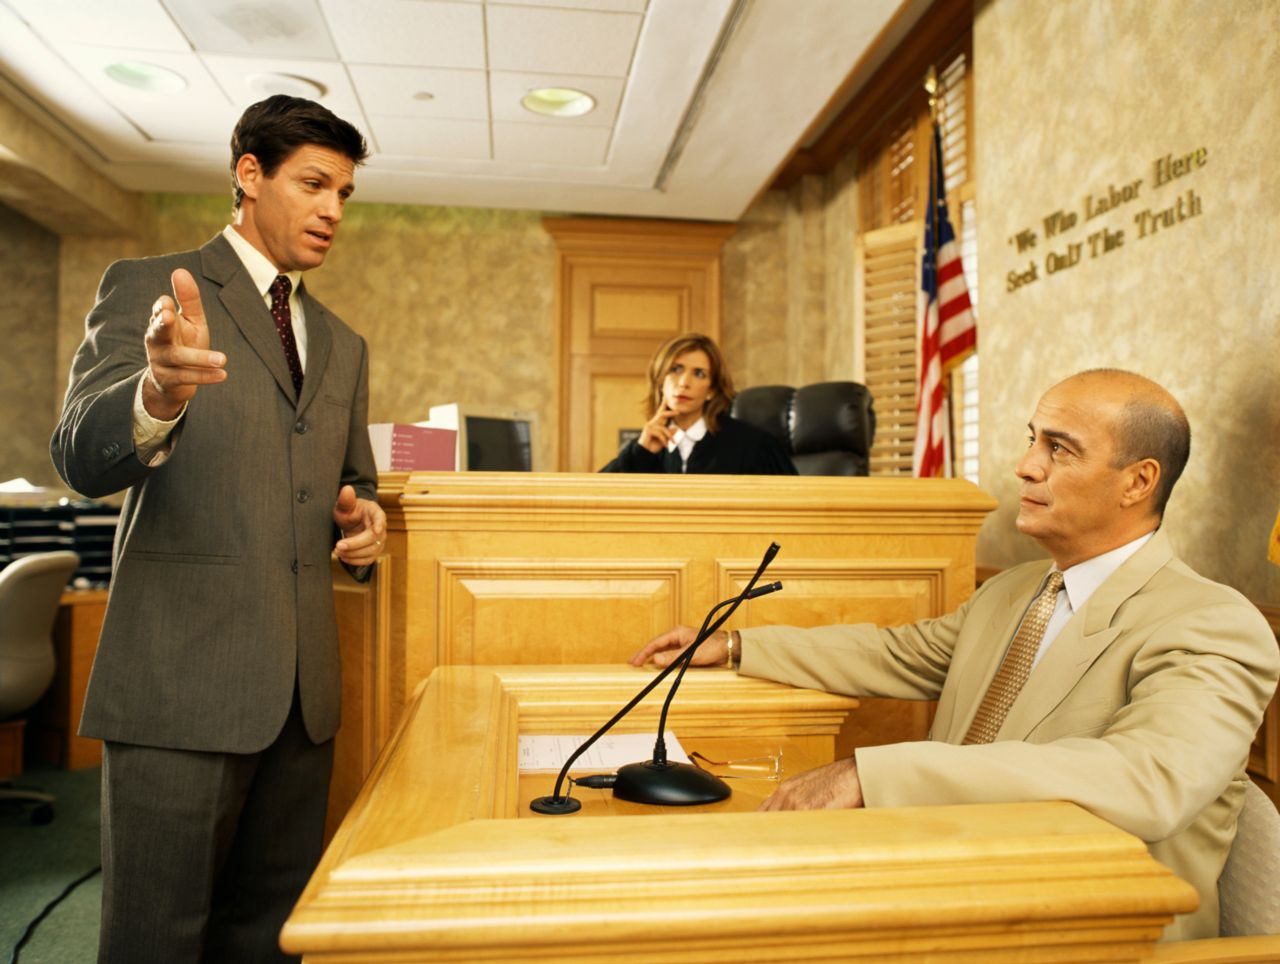 courtroom drama